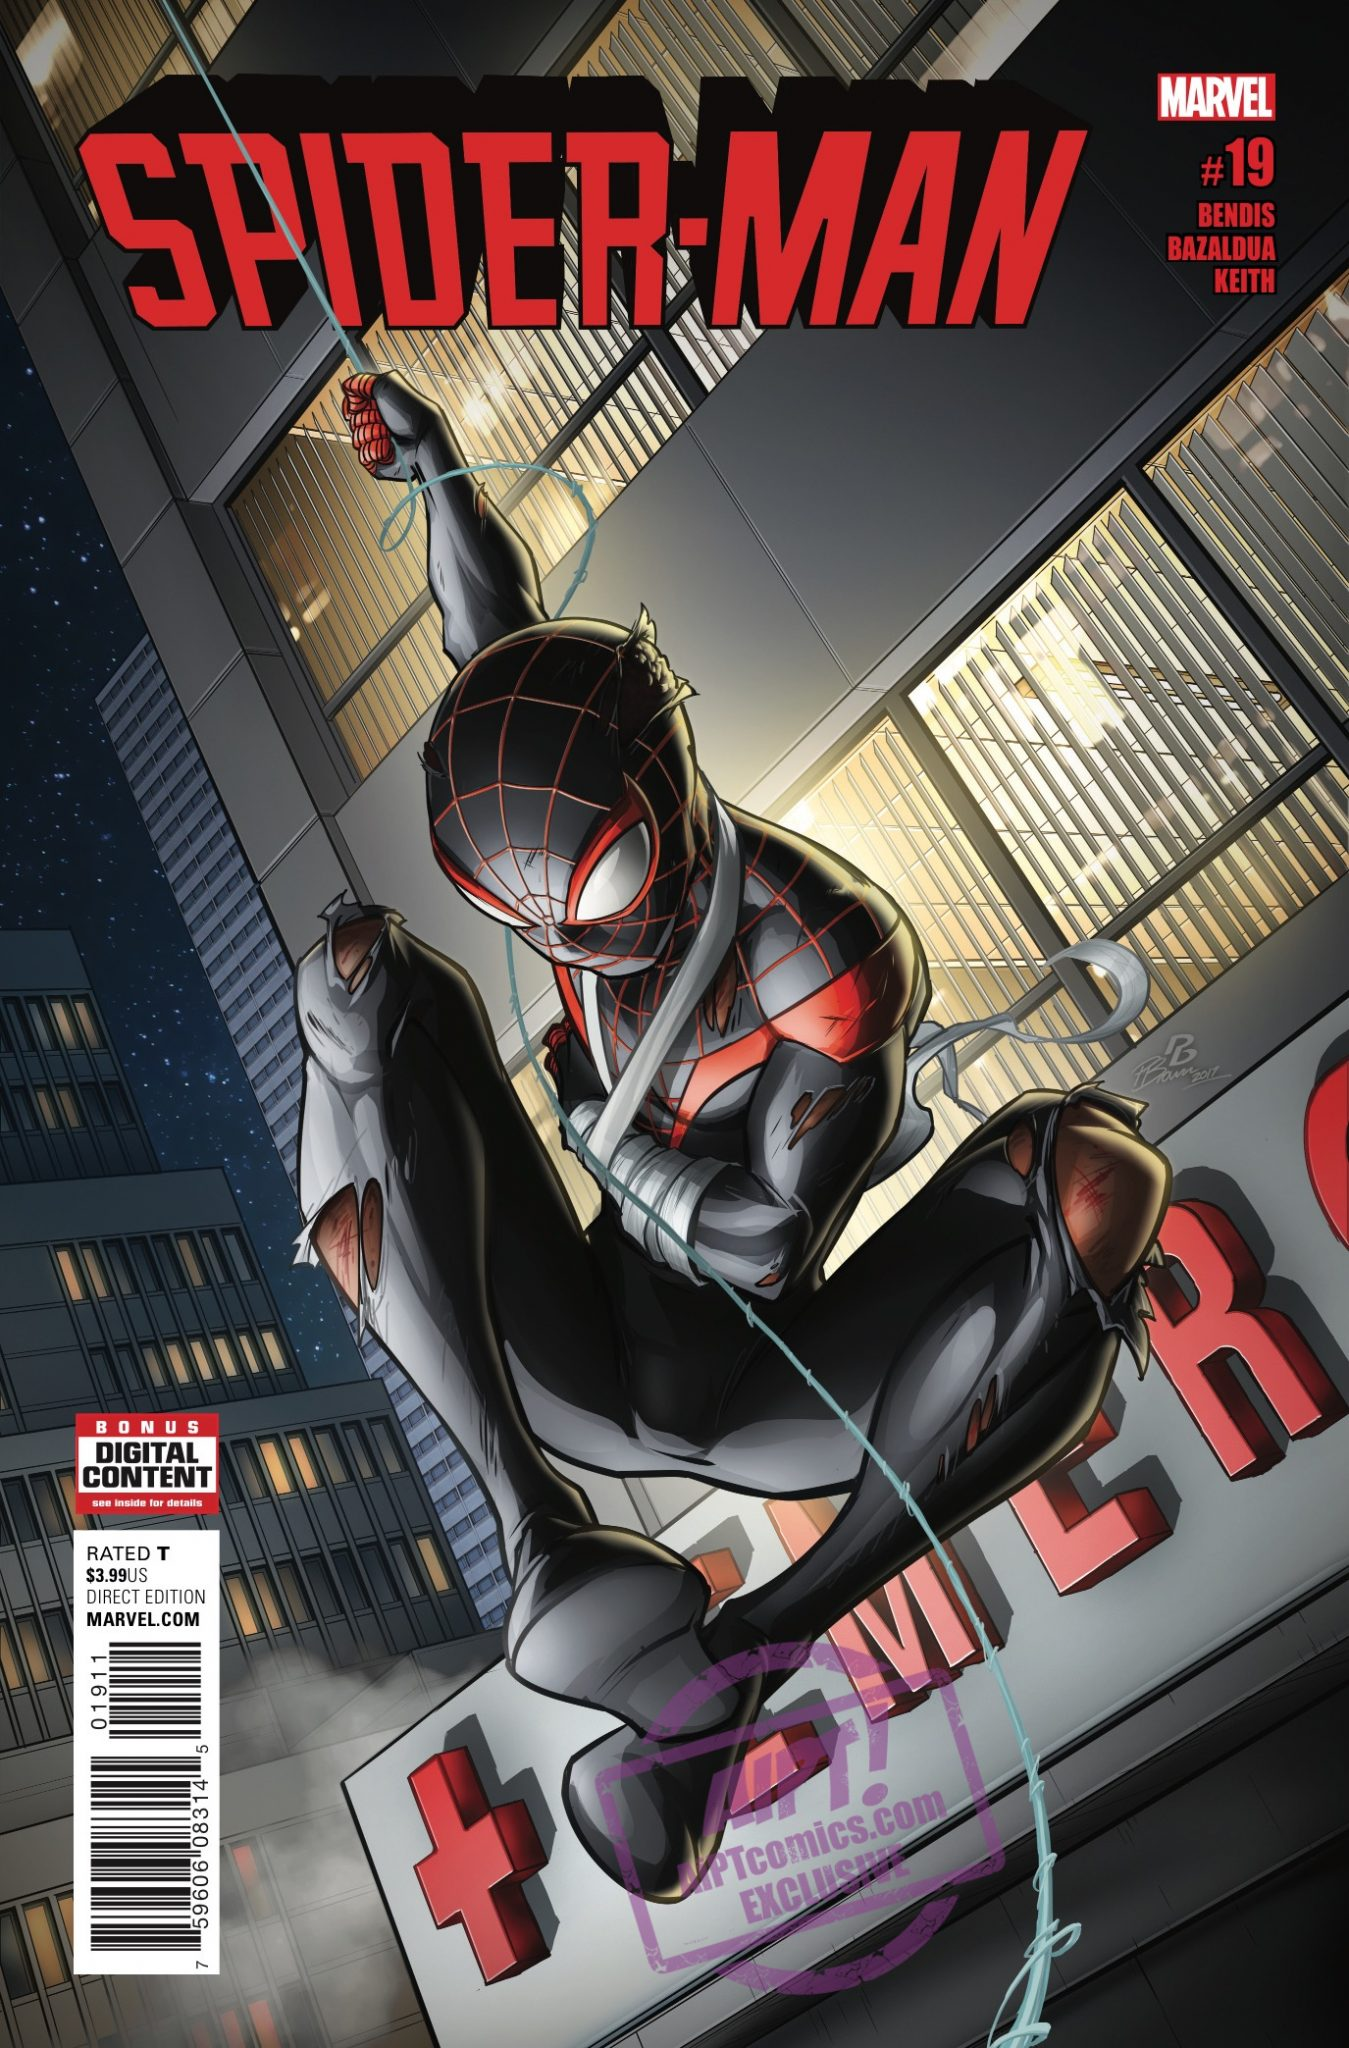 Spider-Man #19 Review